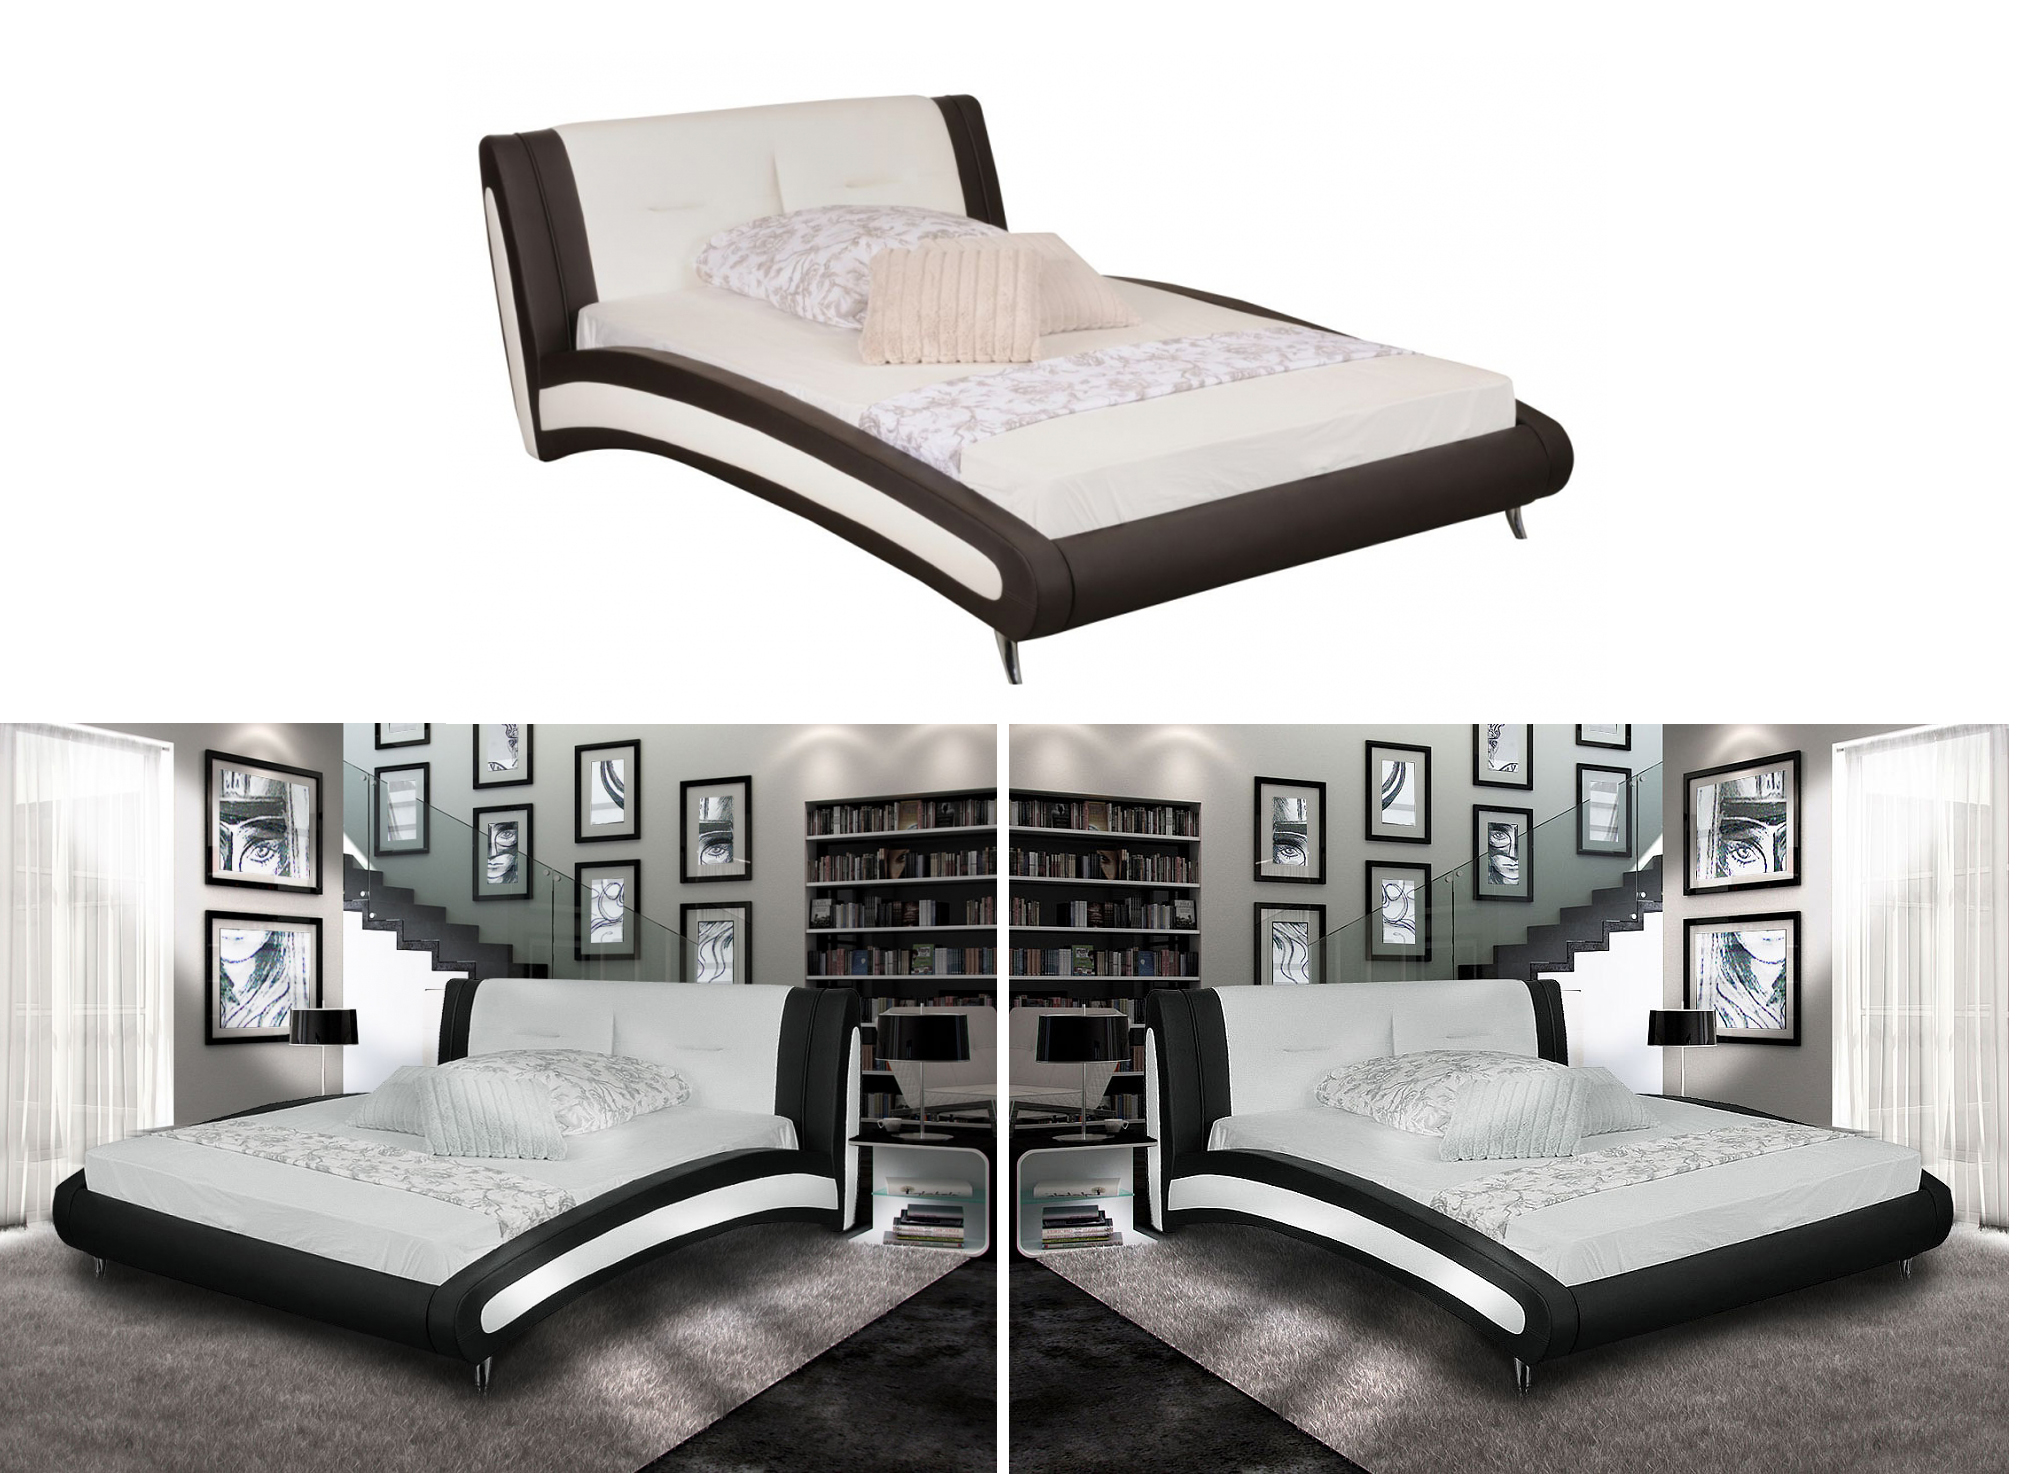 belinda bett doppelbett kunstleder polsterbett 200x200. Black Bedroom Furniture Sets. Home Design Ideas